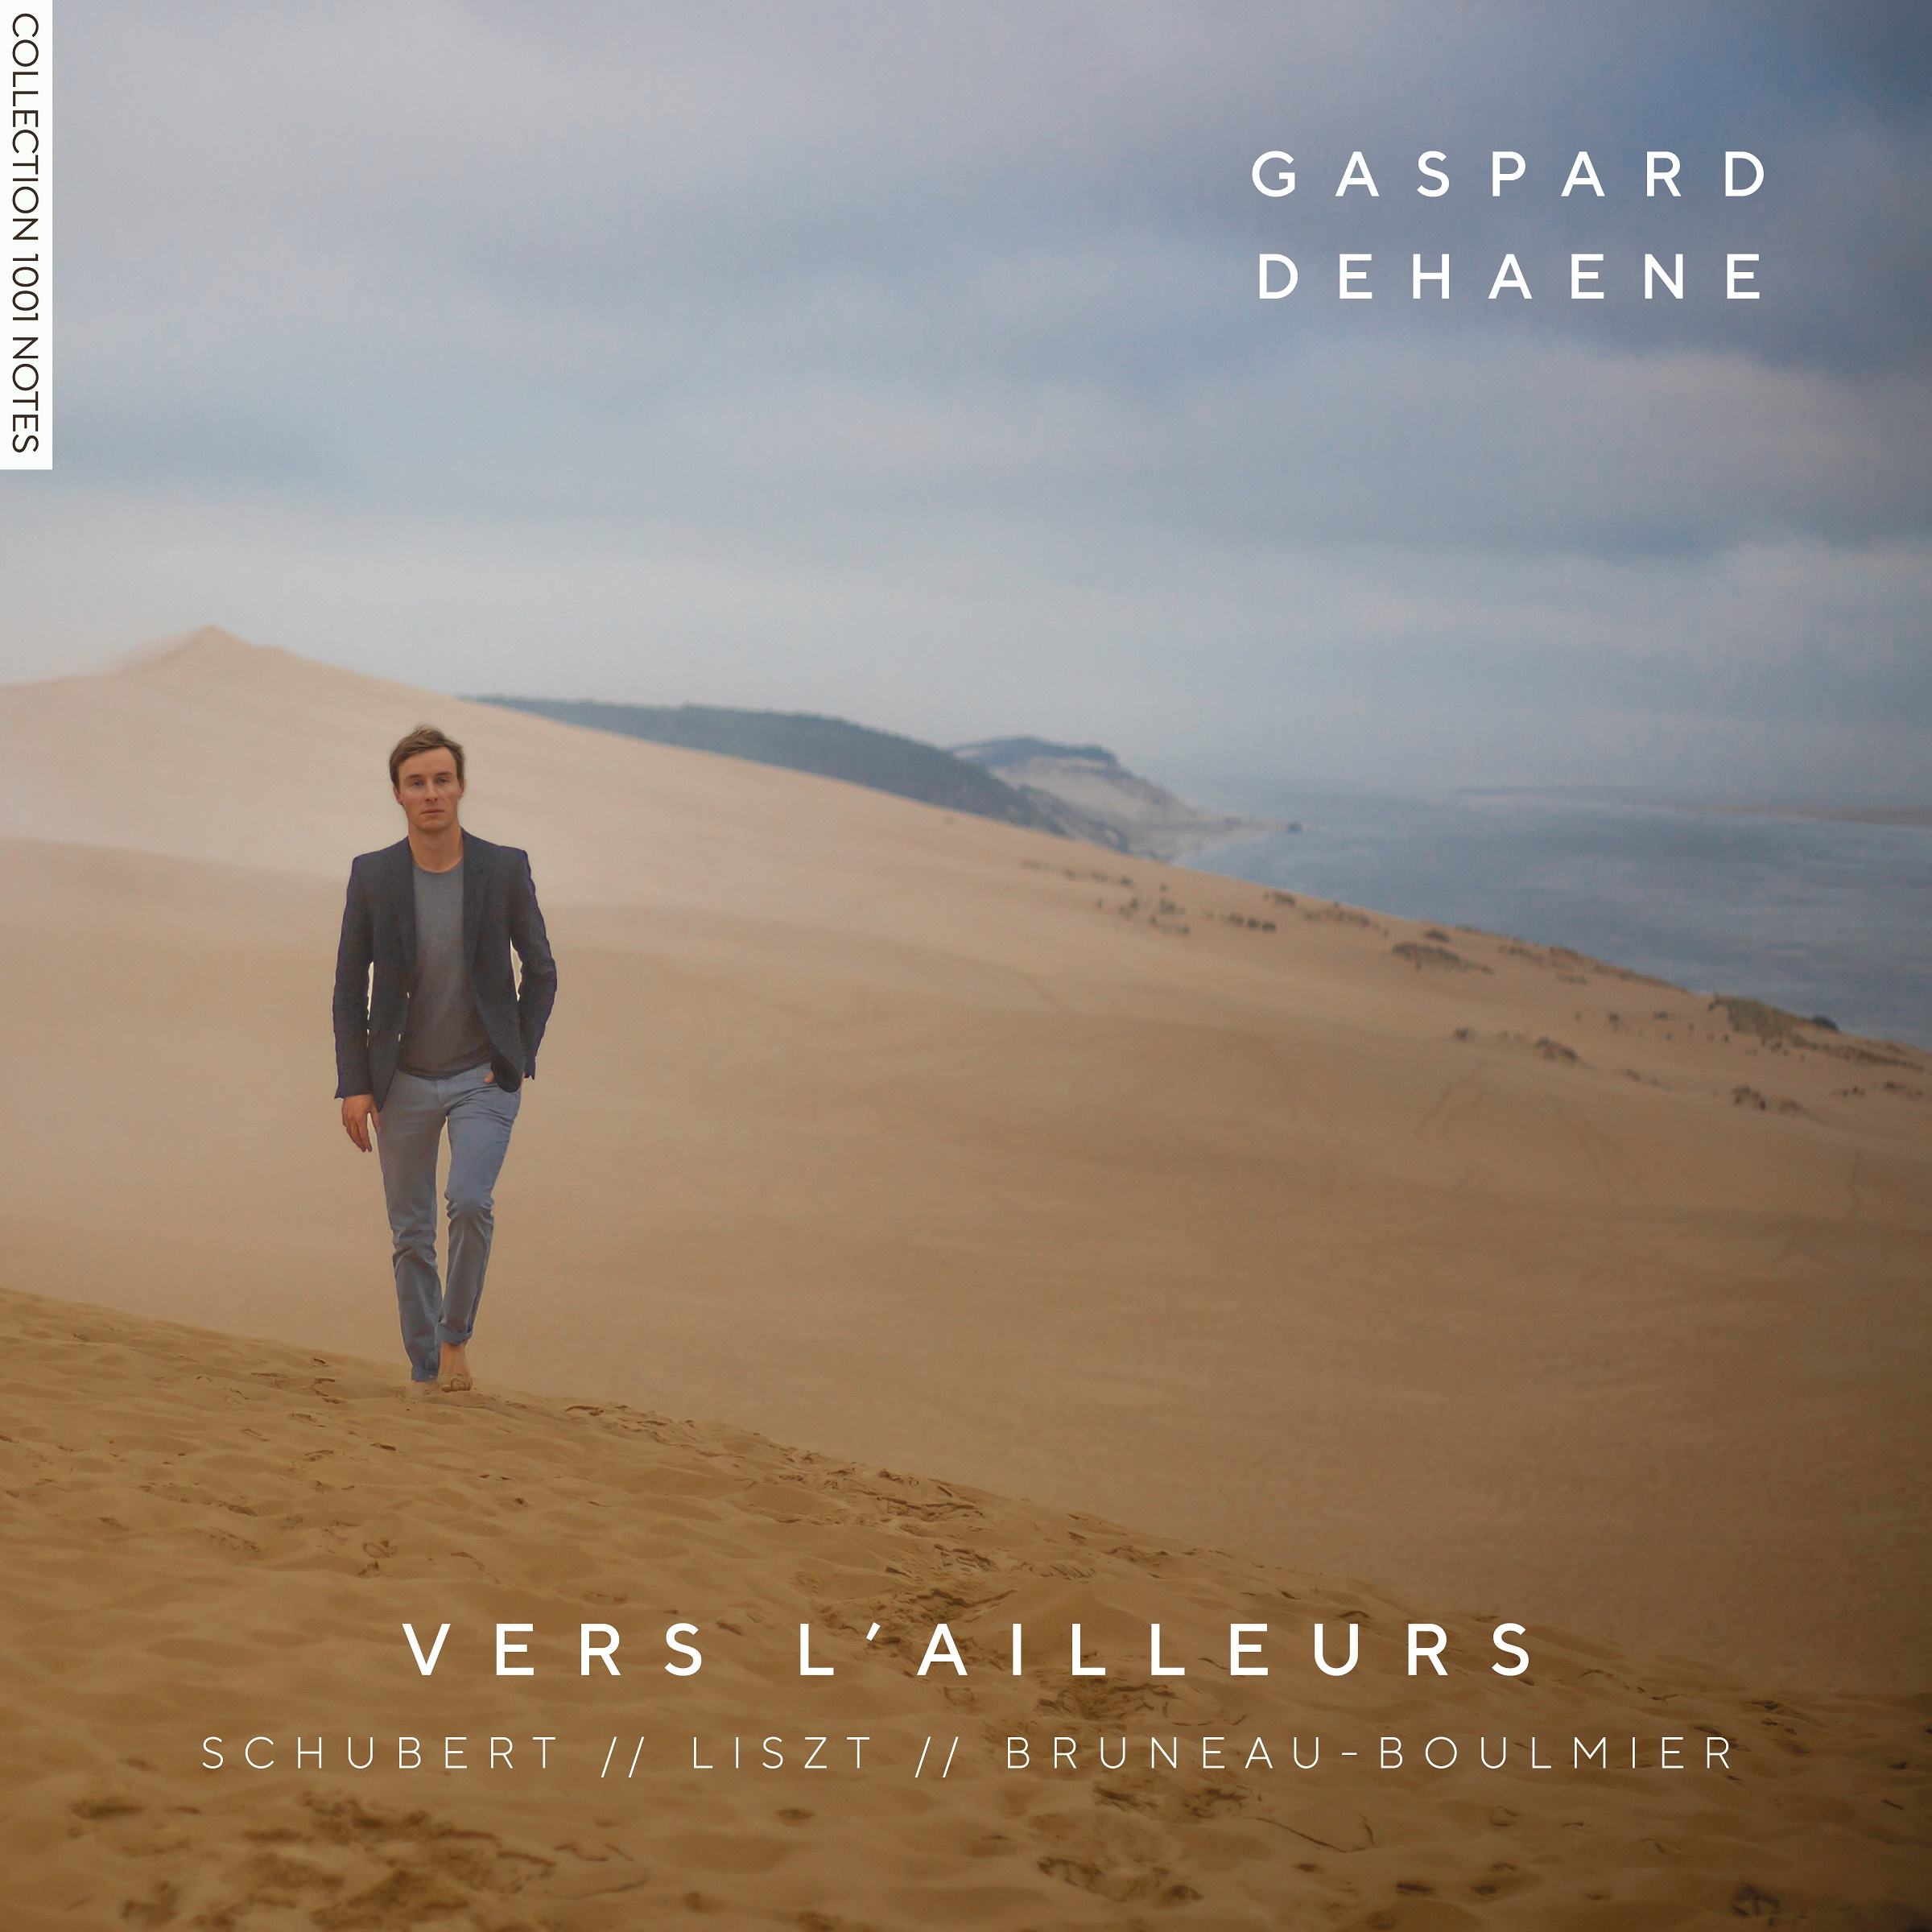 Vers-lailleurs-Gaspard-Dehaene-Collection-1001-Notes